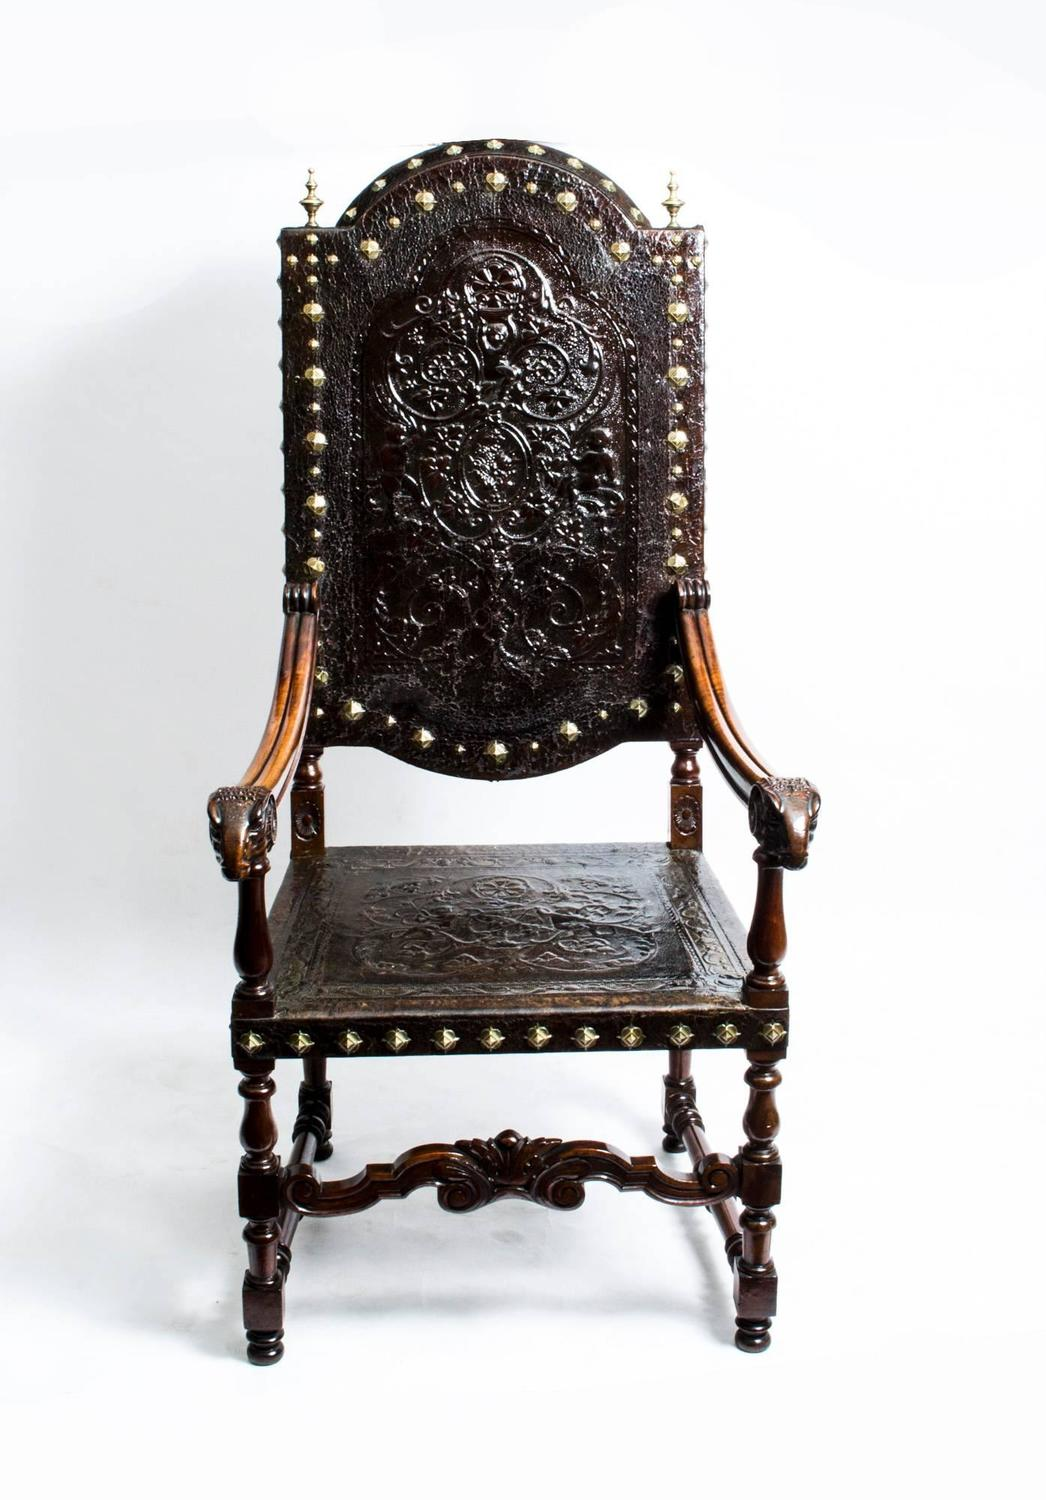 Antique french walnut armchair throne chair circa 1860 at 1stdibs